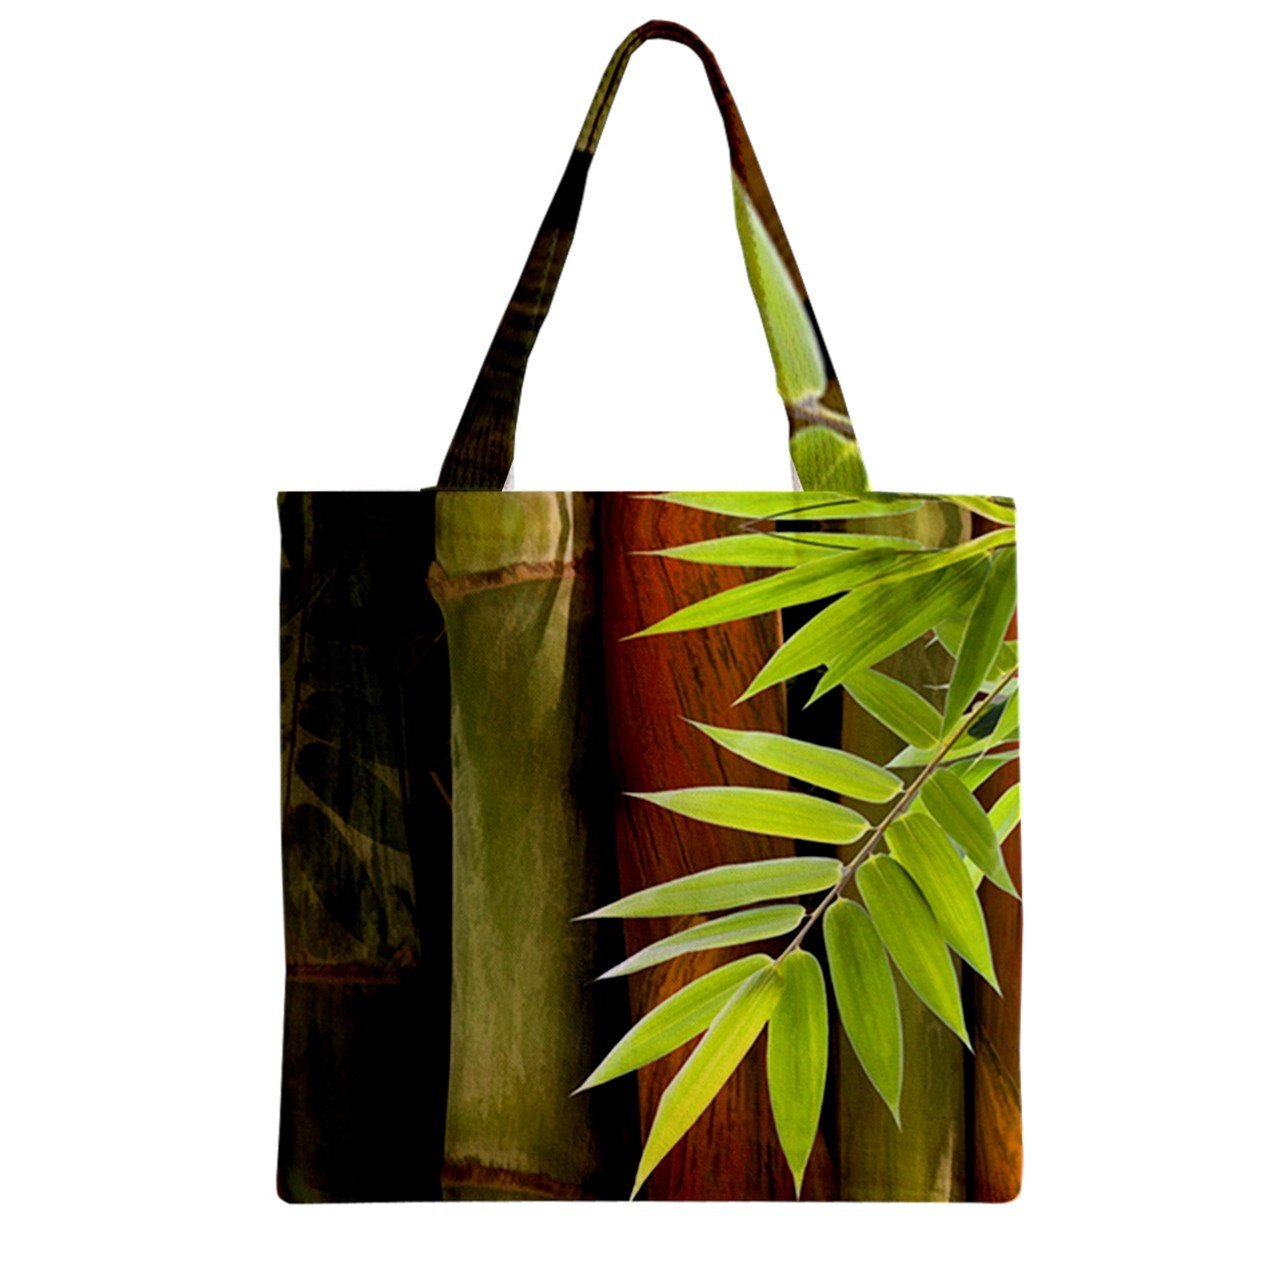 5742535df5a8 Cheap Big Bamboo Tote Bag, find Big Bamboo Tote Bag deals on line at ...